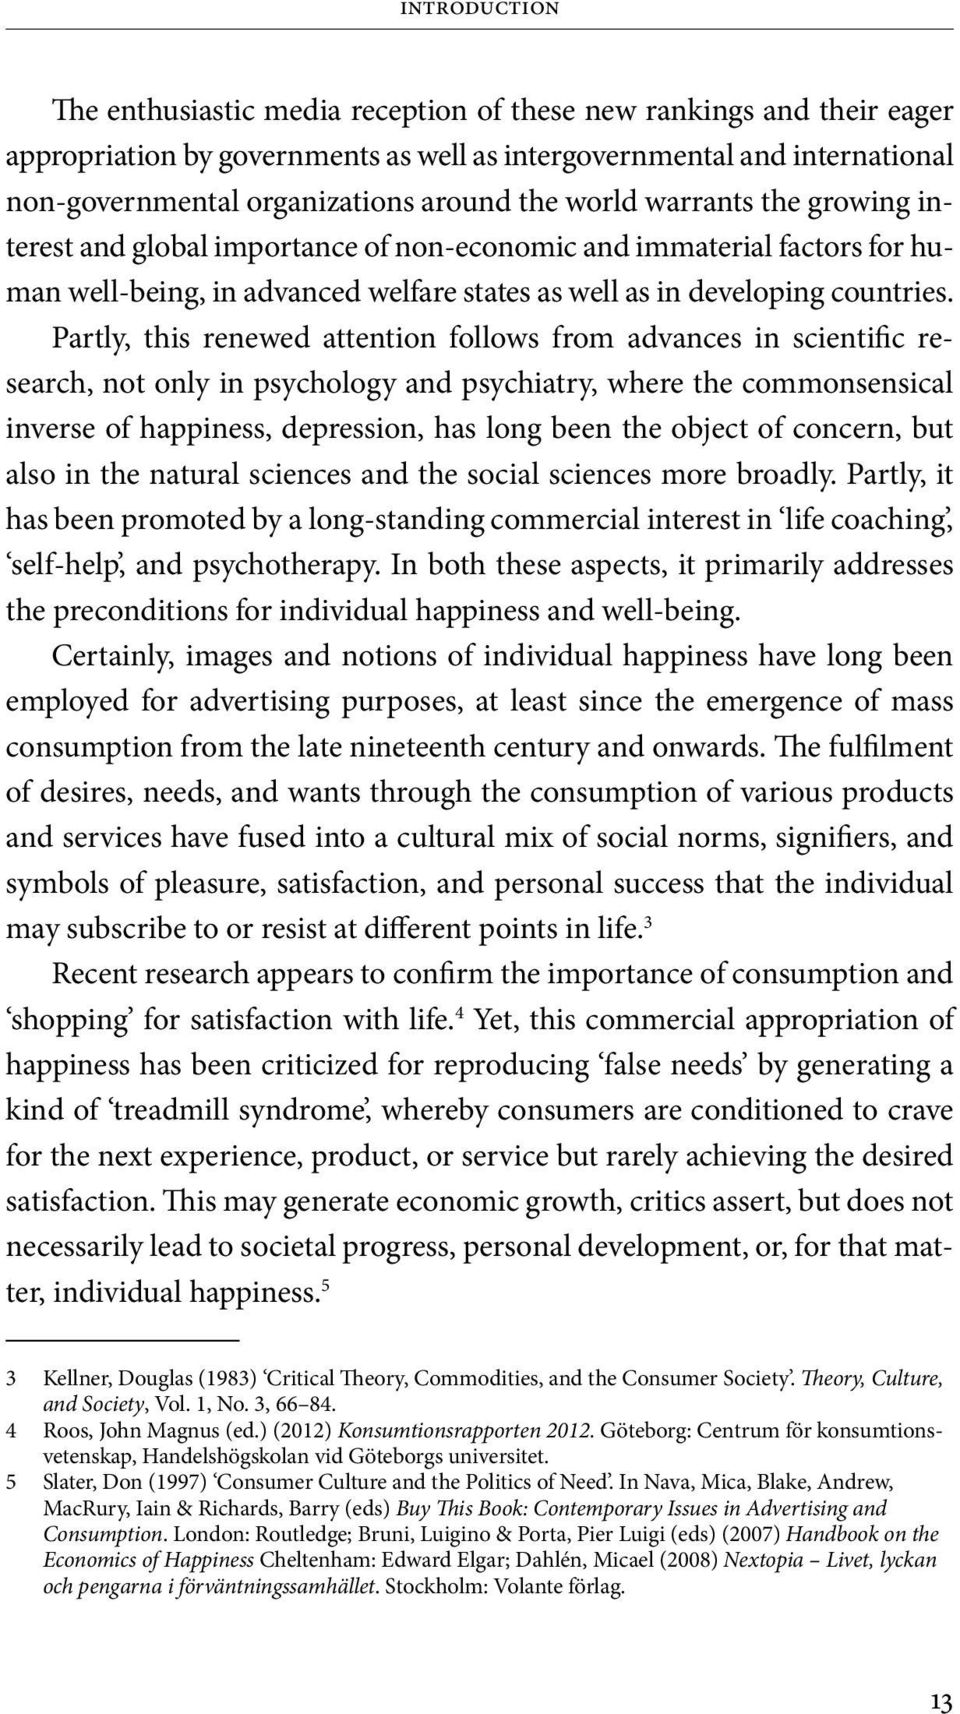 Partly, this renewed attention follows from advances in scientific research, not only in psychology and psychiatry, where the commonsensical inverse of happiness, depression, has long been the object